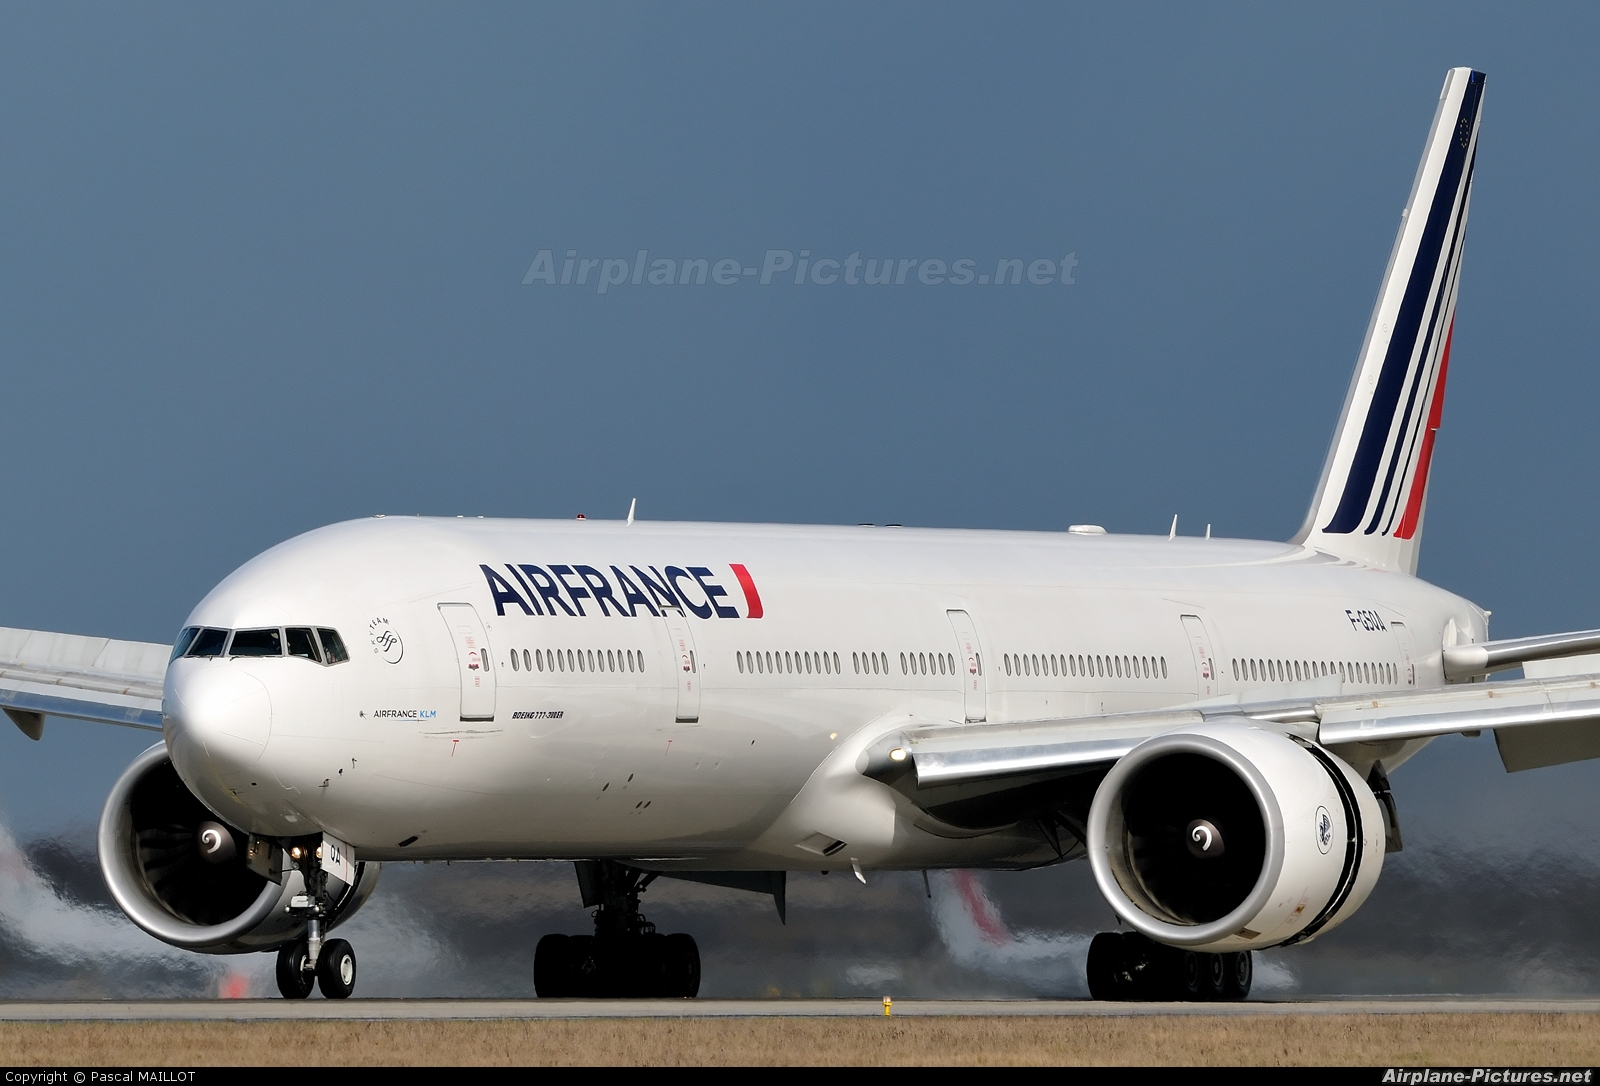 F gsqa air france boeing 777 300er at paris charles de for Interieur boeing 777 300er air france